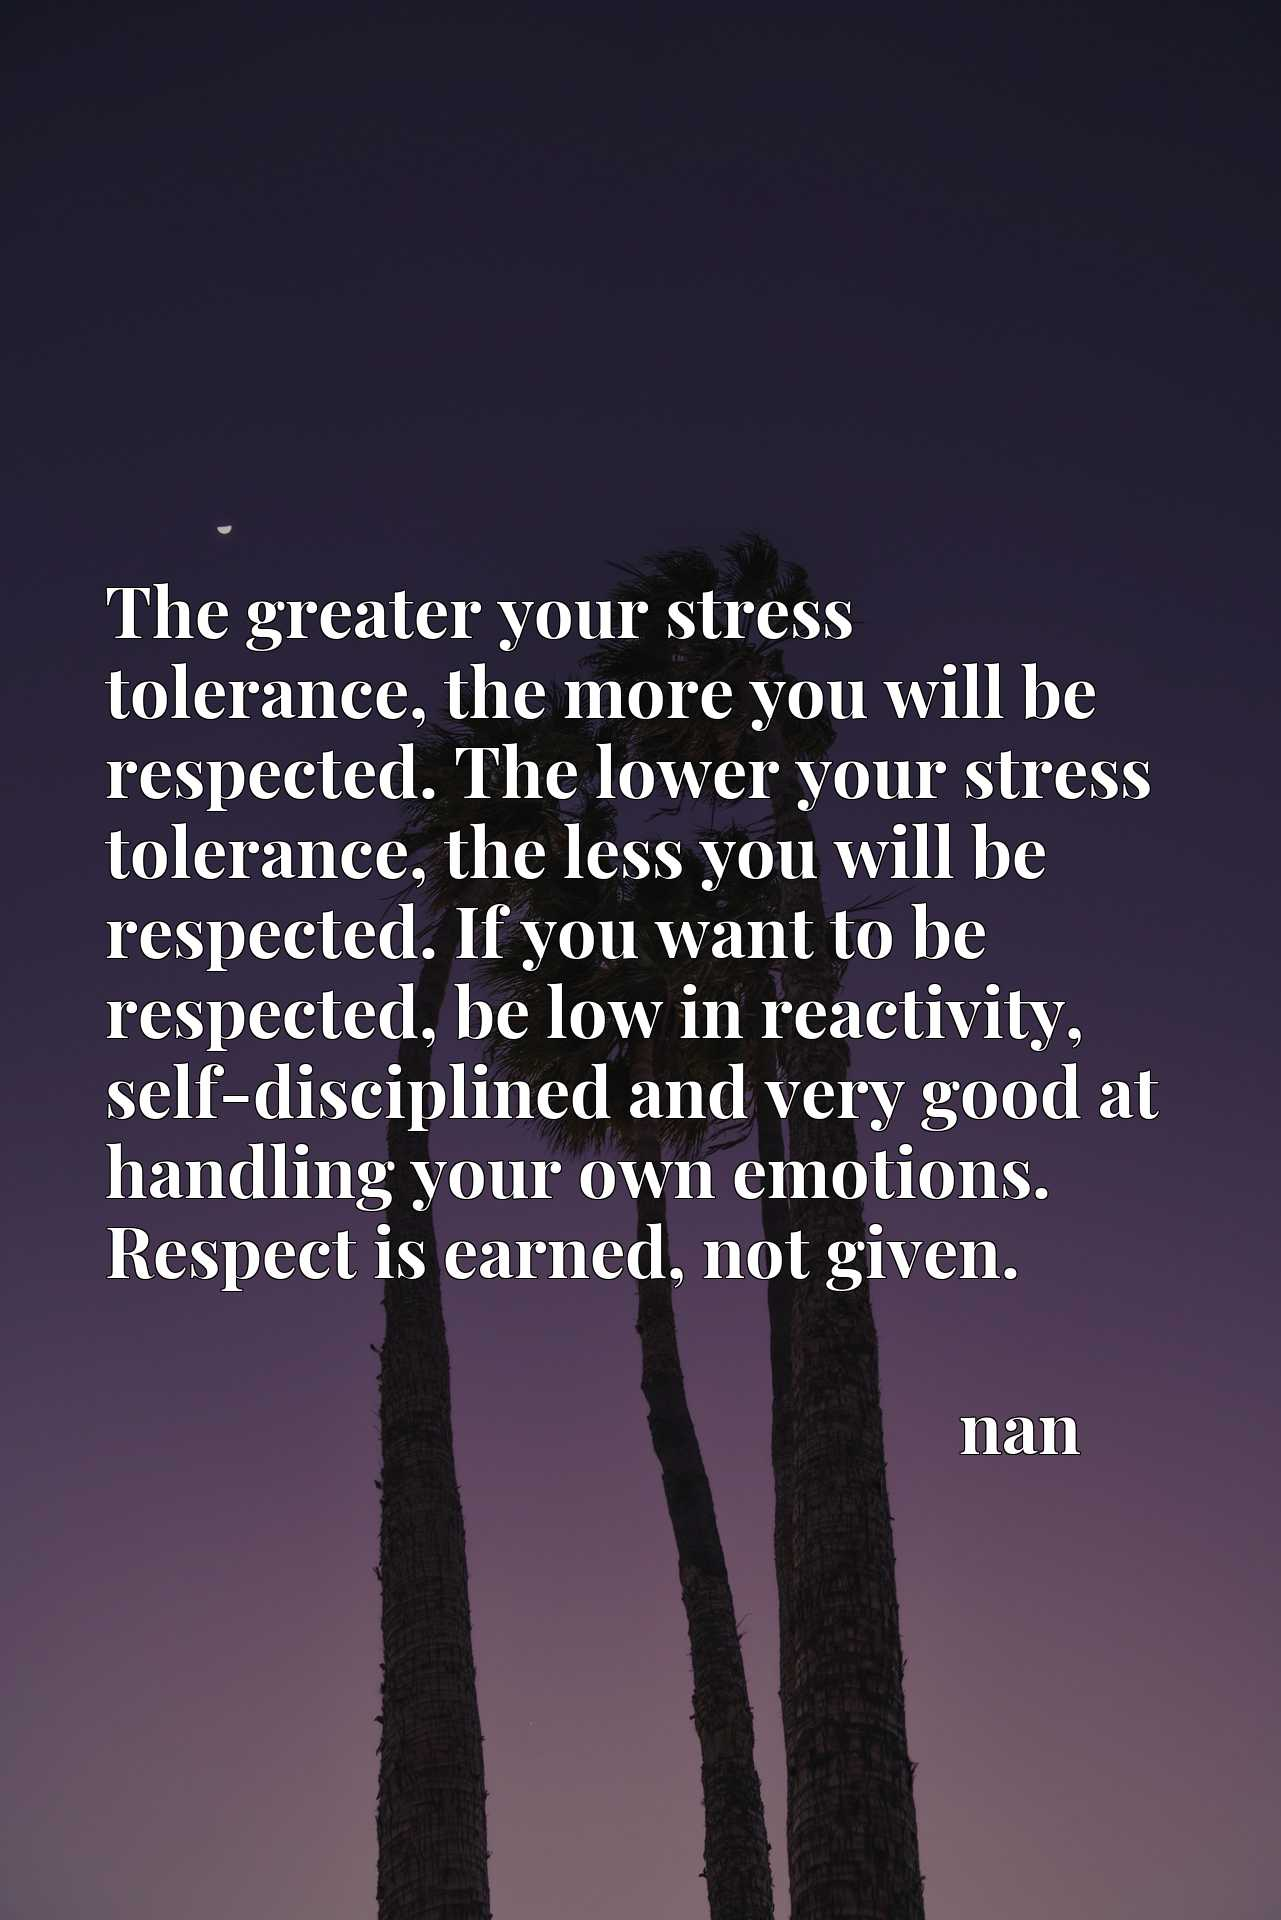 The greater your stress tolerance, the more you will be respected. The lower your stress tolerance, the less you will be respected. If you want to be respected, be low in reactivity, self-disciplined and very good at handling your own emotions. Respect is earned, not given.